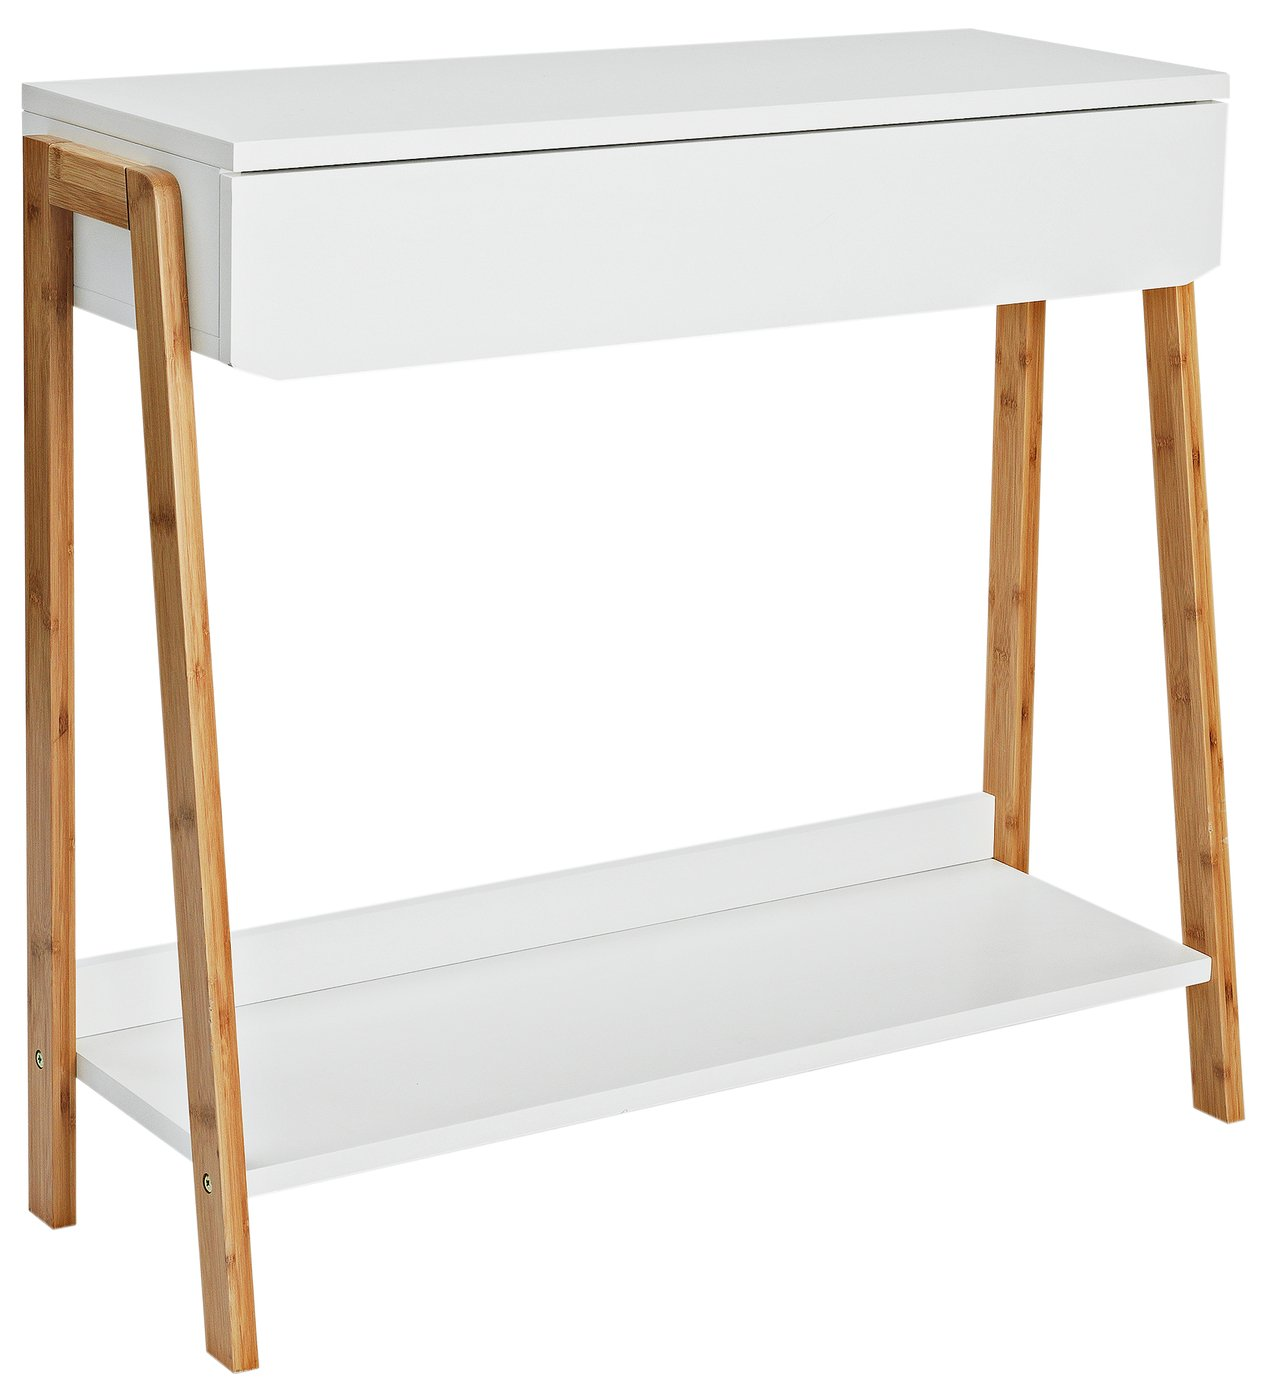 Argos Home Belvoir Console Table - Bamboo and White